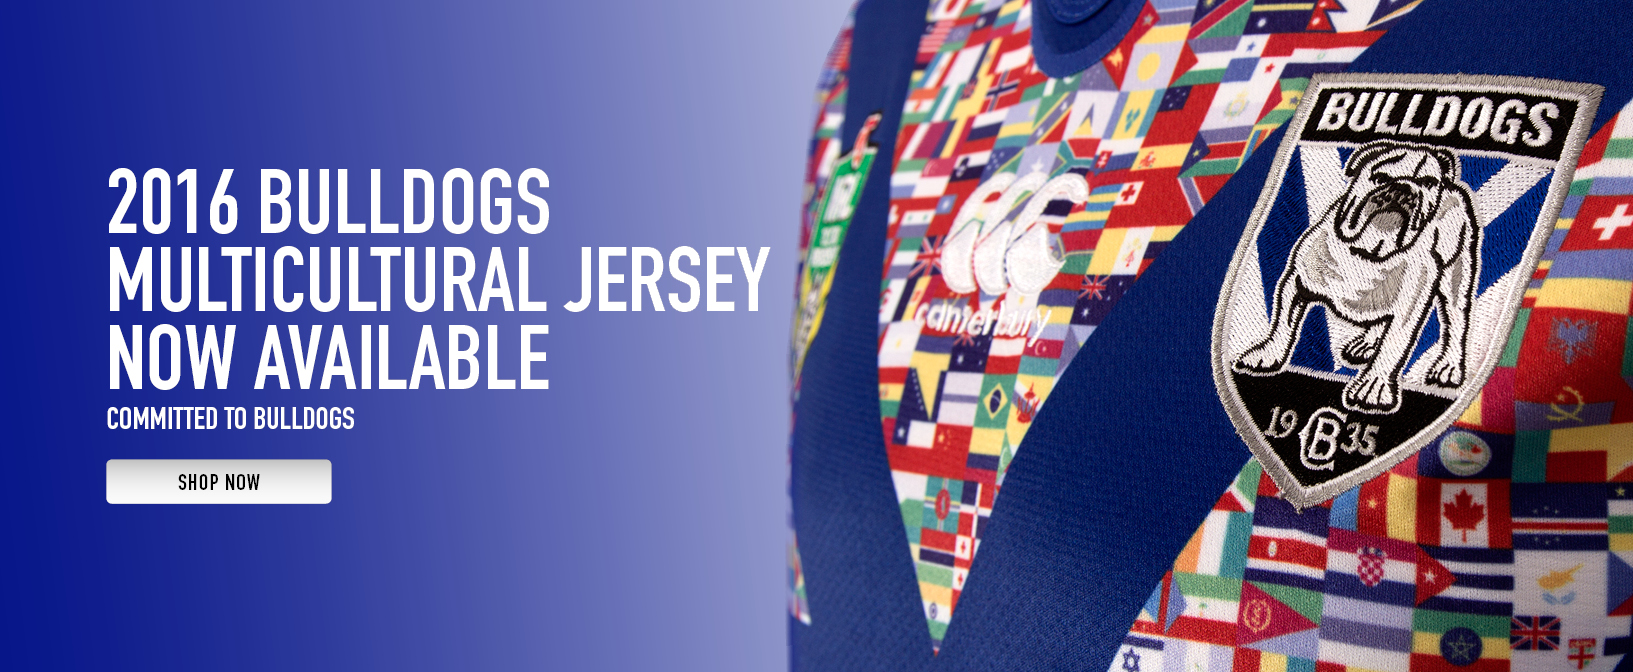 Bulldogs Multicultural Jersey 2016